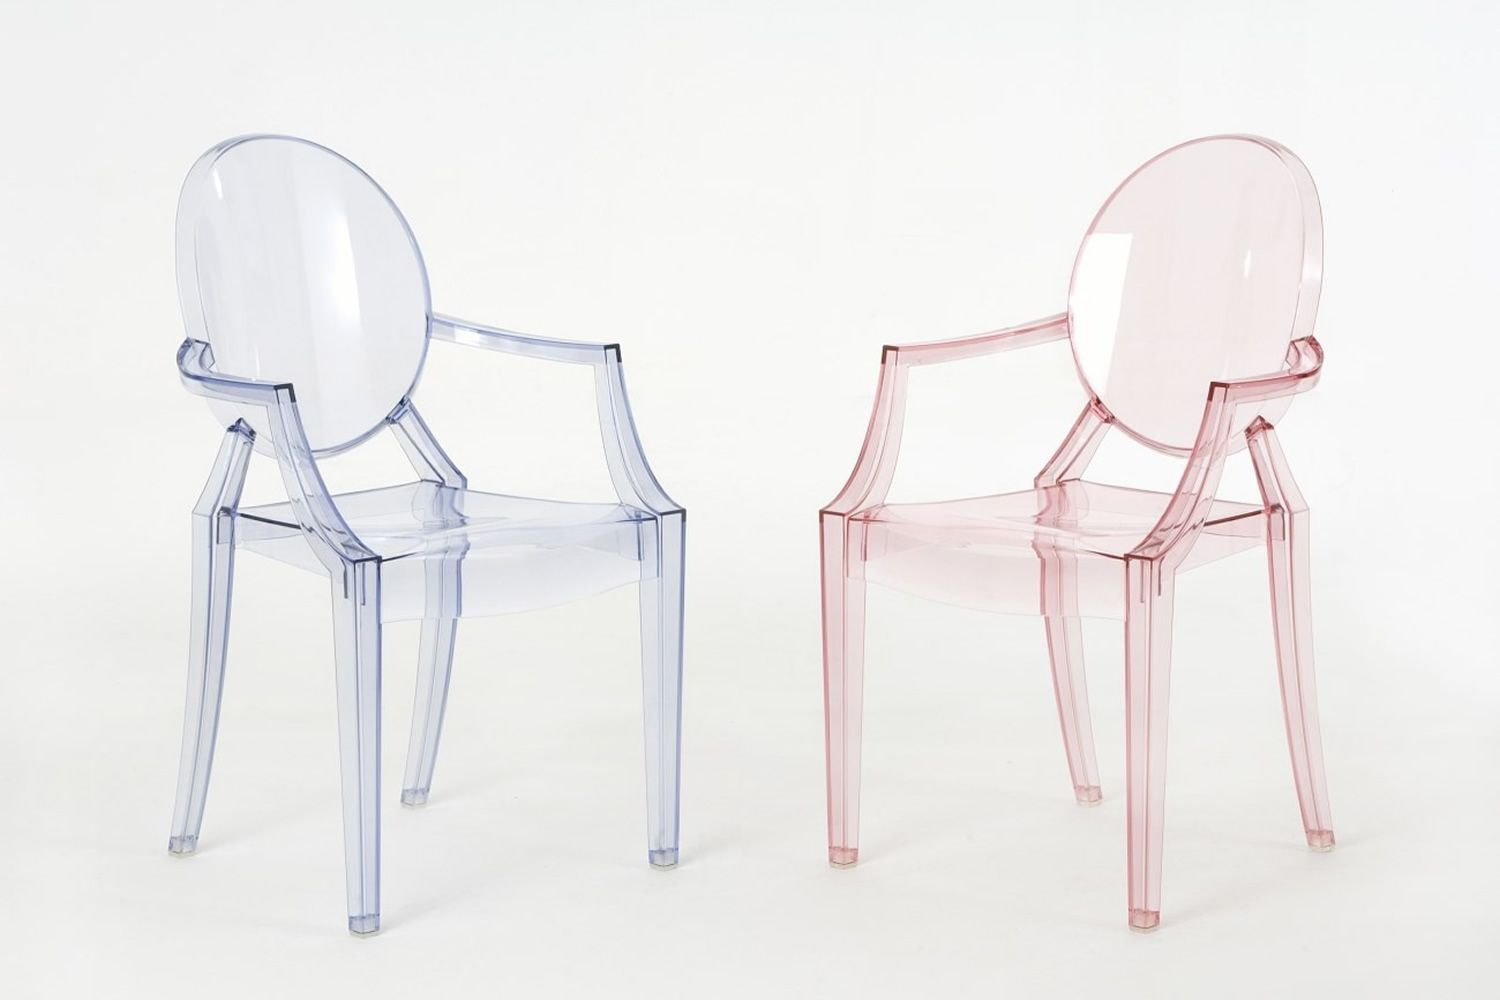 kids ghost chair history of chairs lou kartell design for children